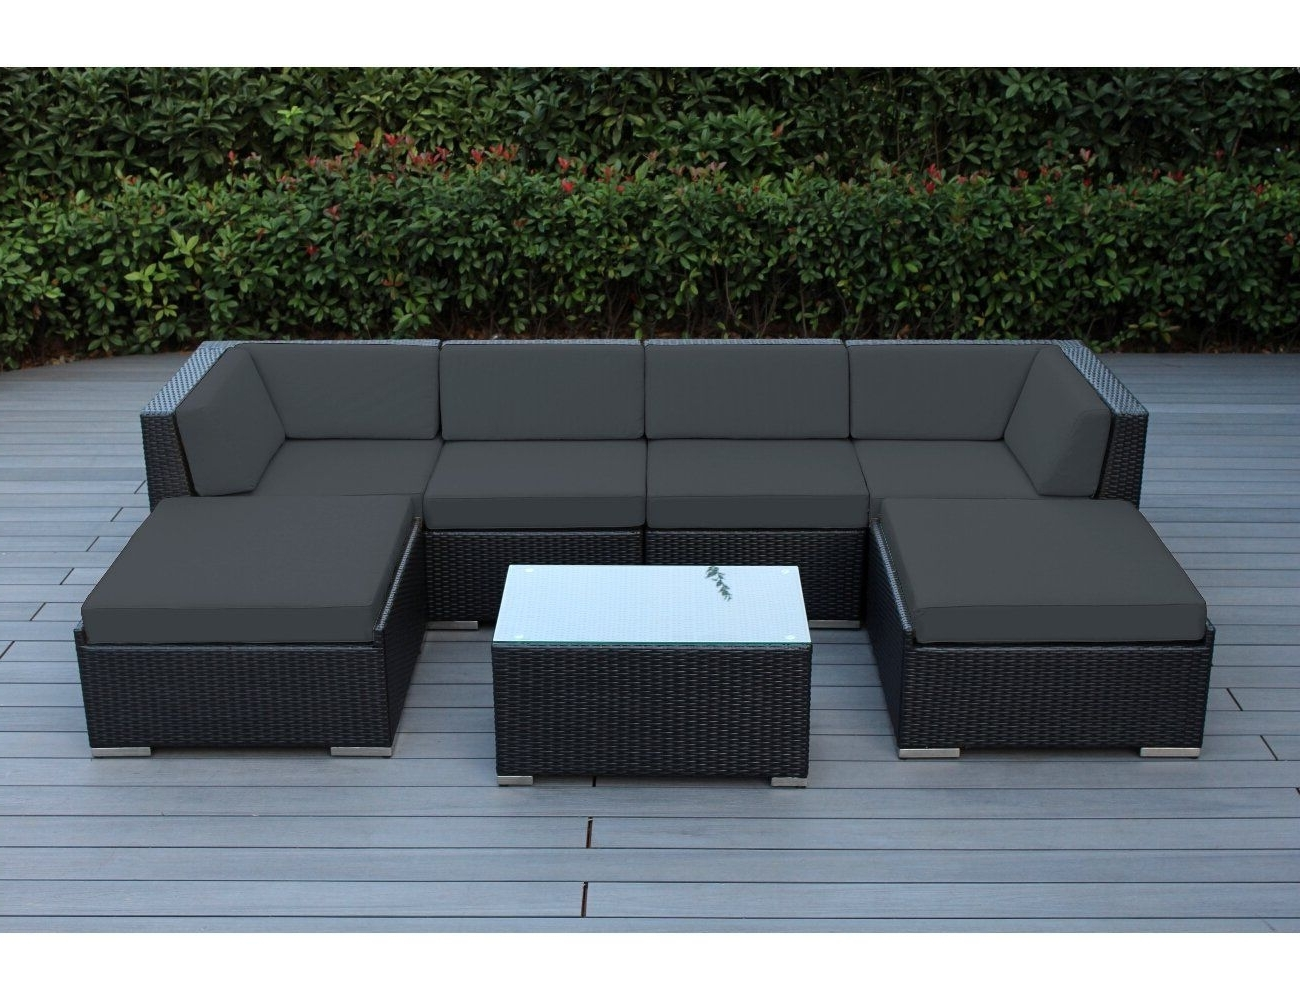 Famous Conversation Patio Sets With Outdoor Sectionals Regarding Ohana 7 Piece Outdoor Patio Furniture Sectional Conversation Set (View 15 of 20)